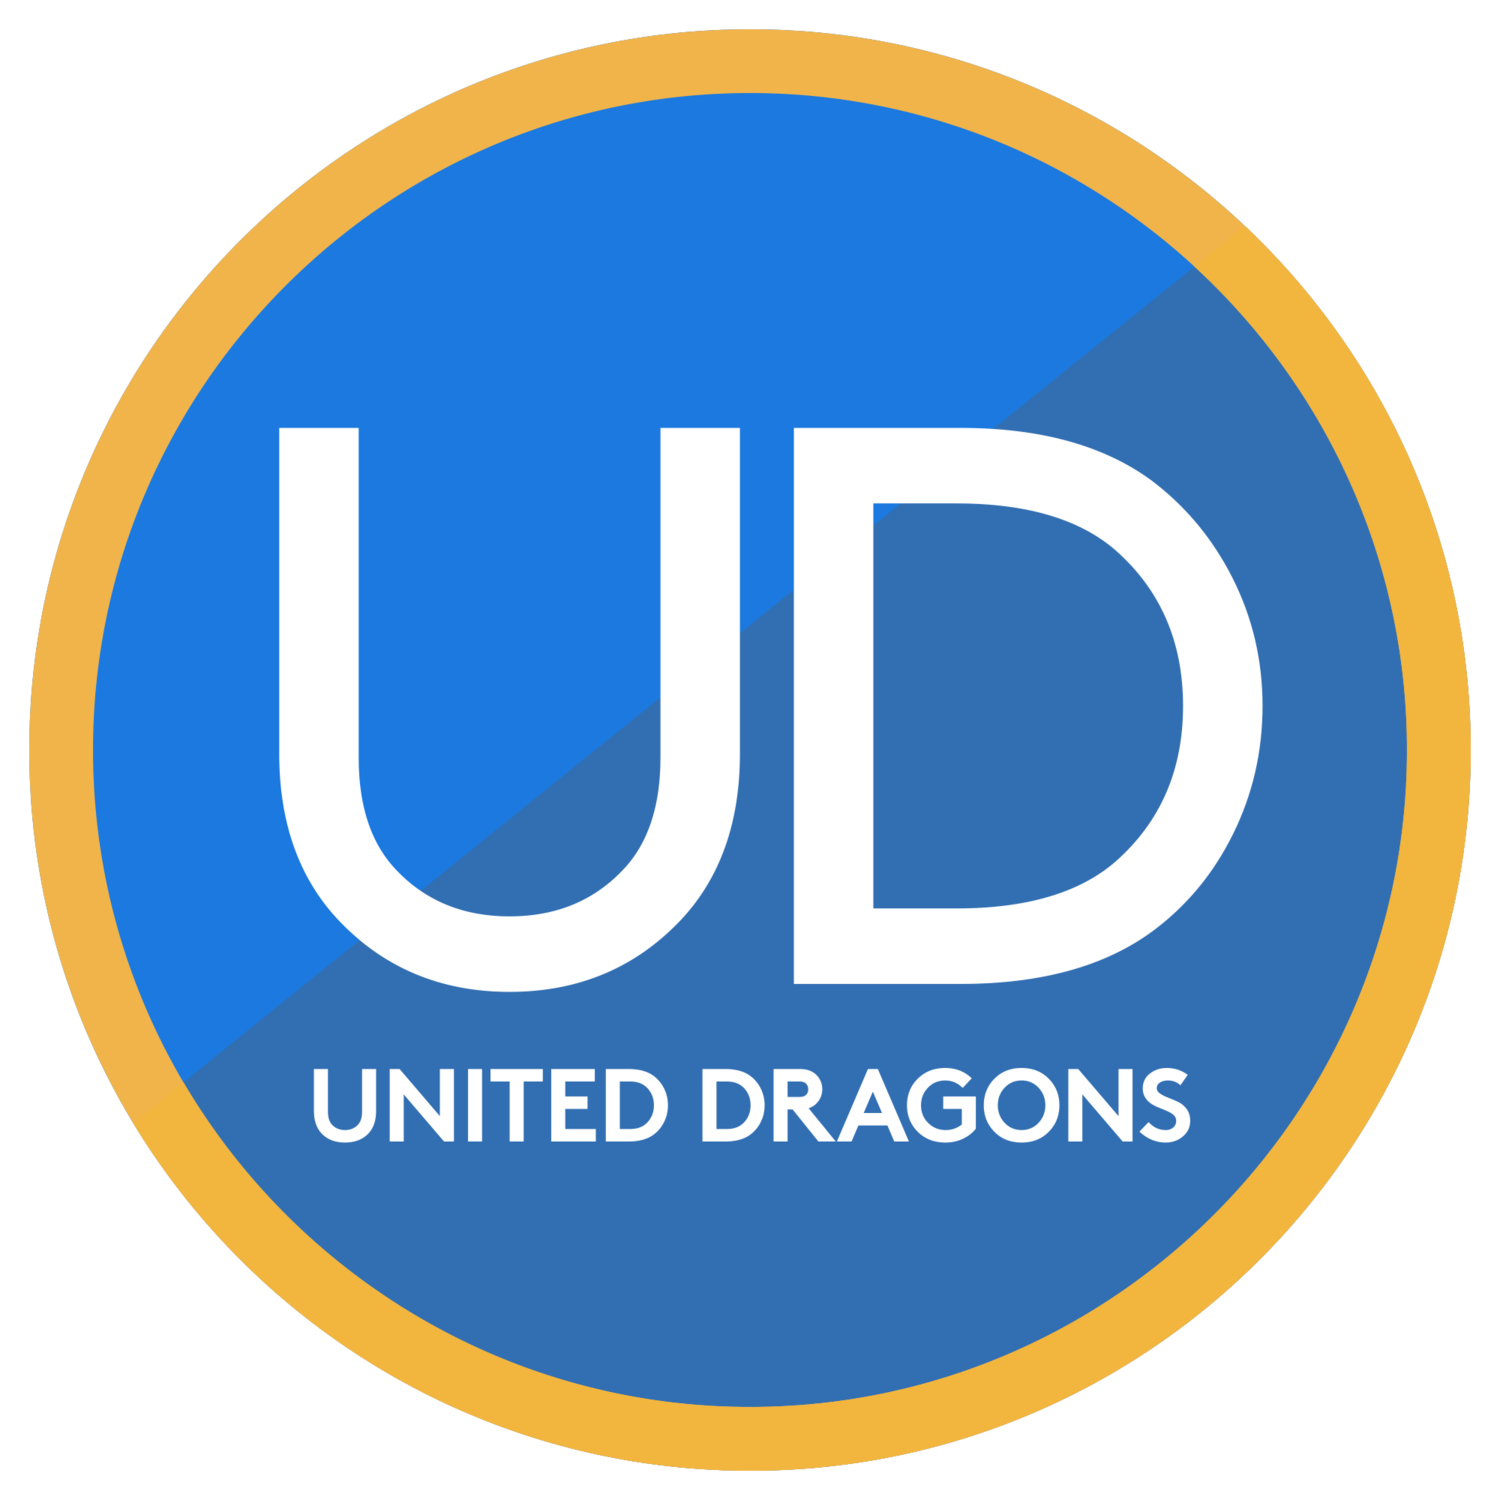 United Dragons